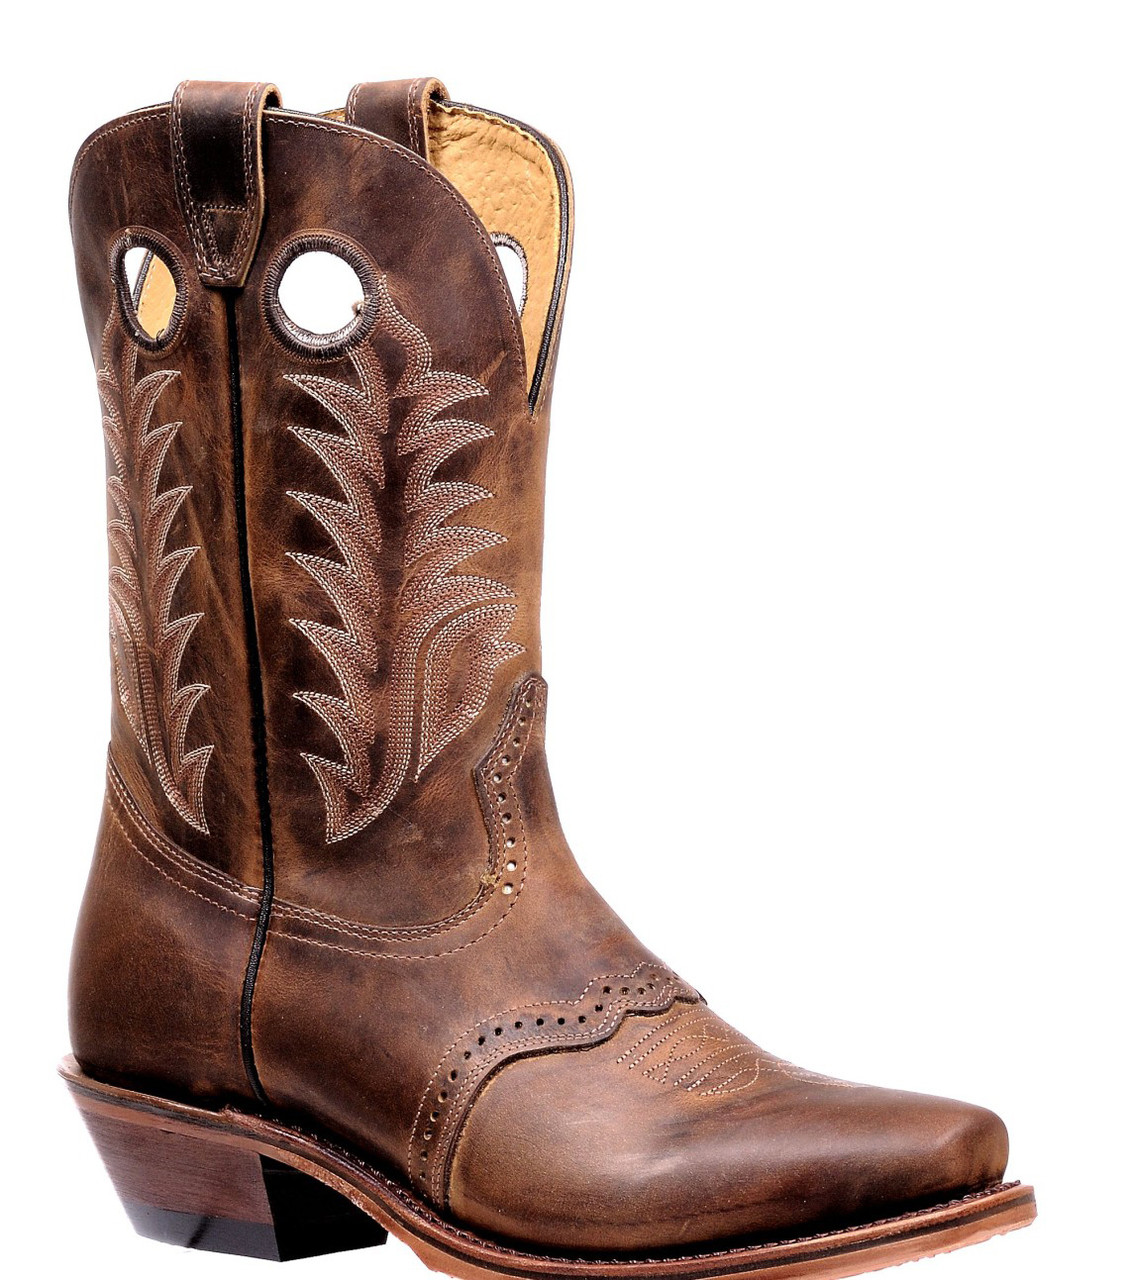 376f8f36cdc Boulet Men's Brown Rider Challenger Cowboy Boots 7774